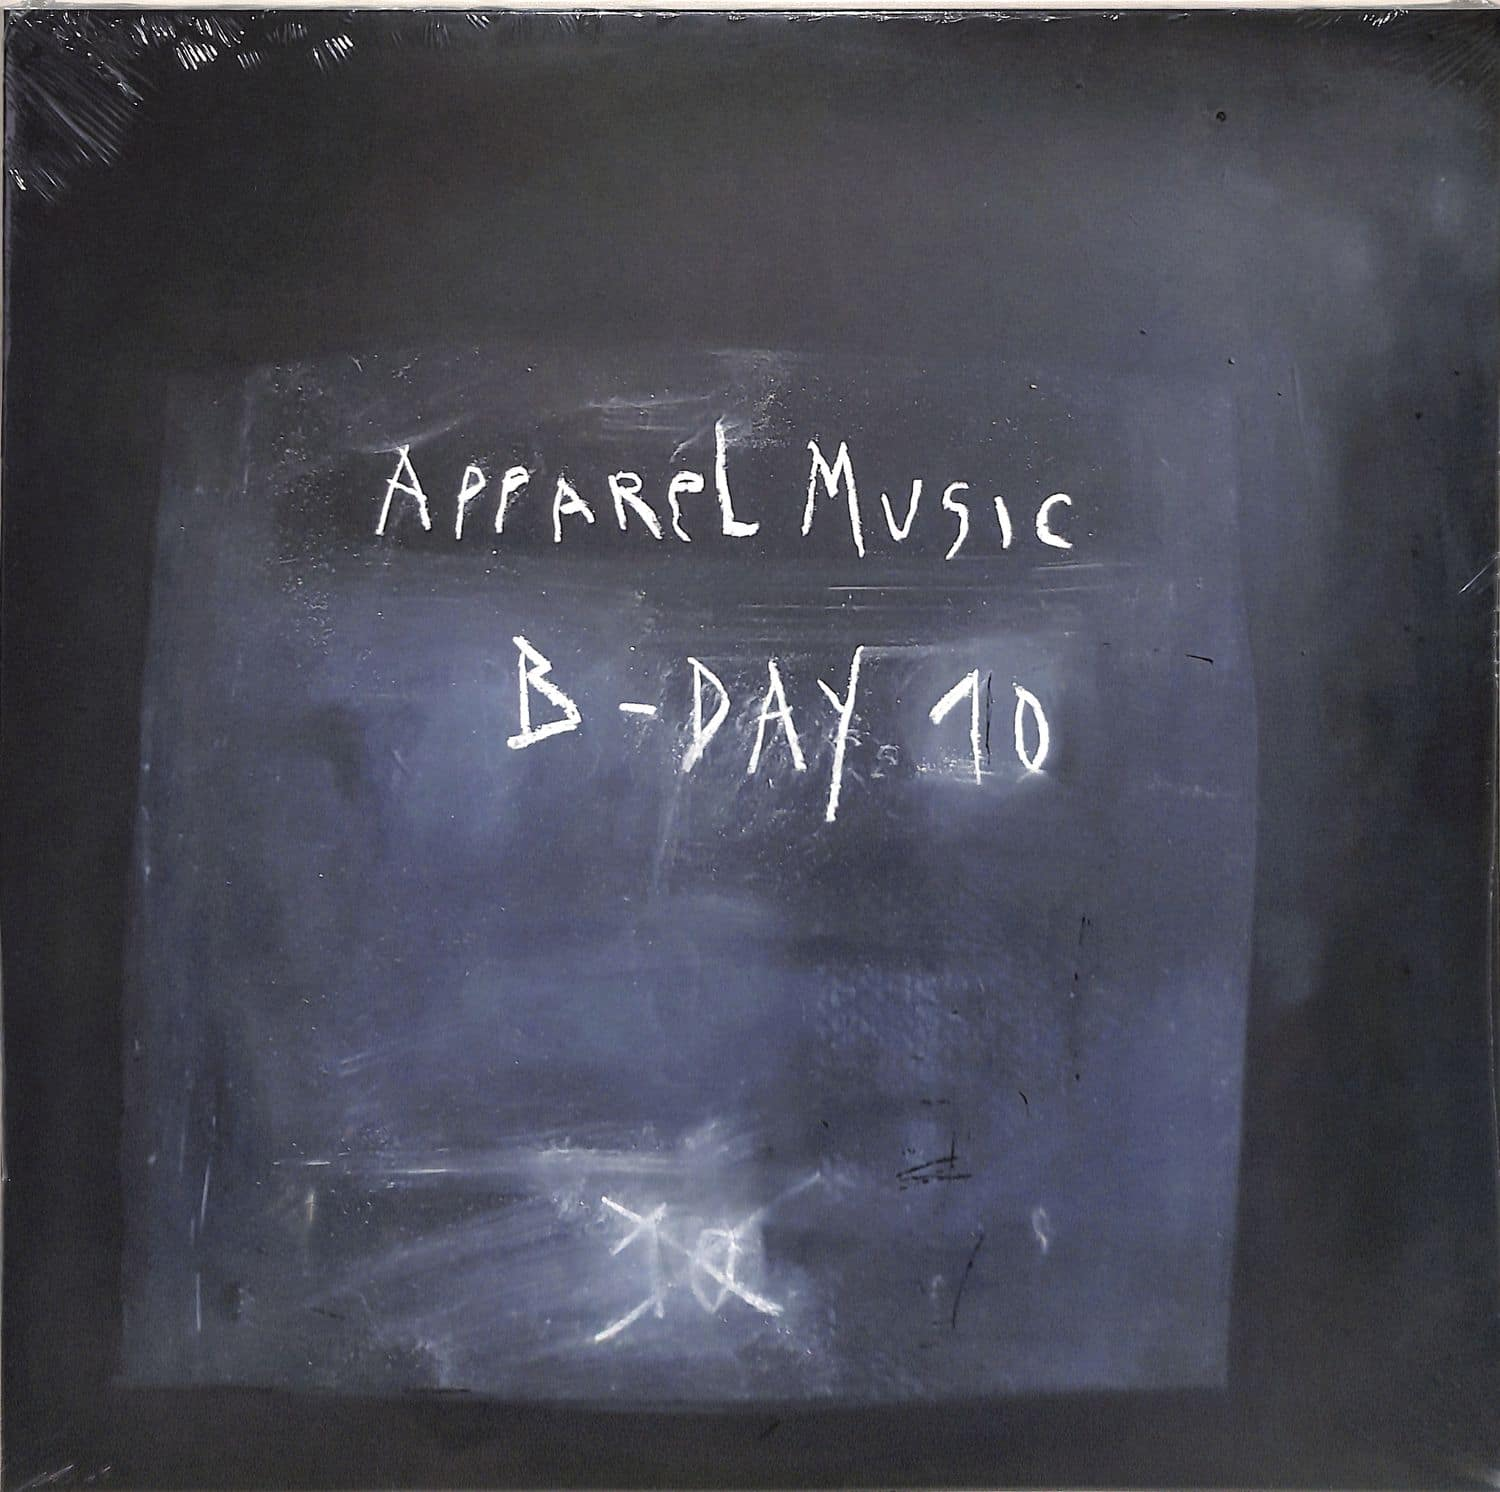 Various Artists - APPAREL MUSIC B-DAY 10